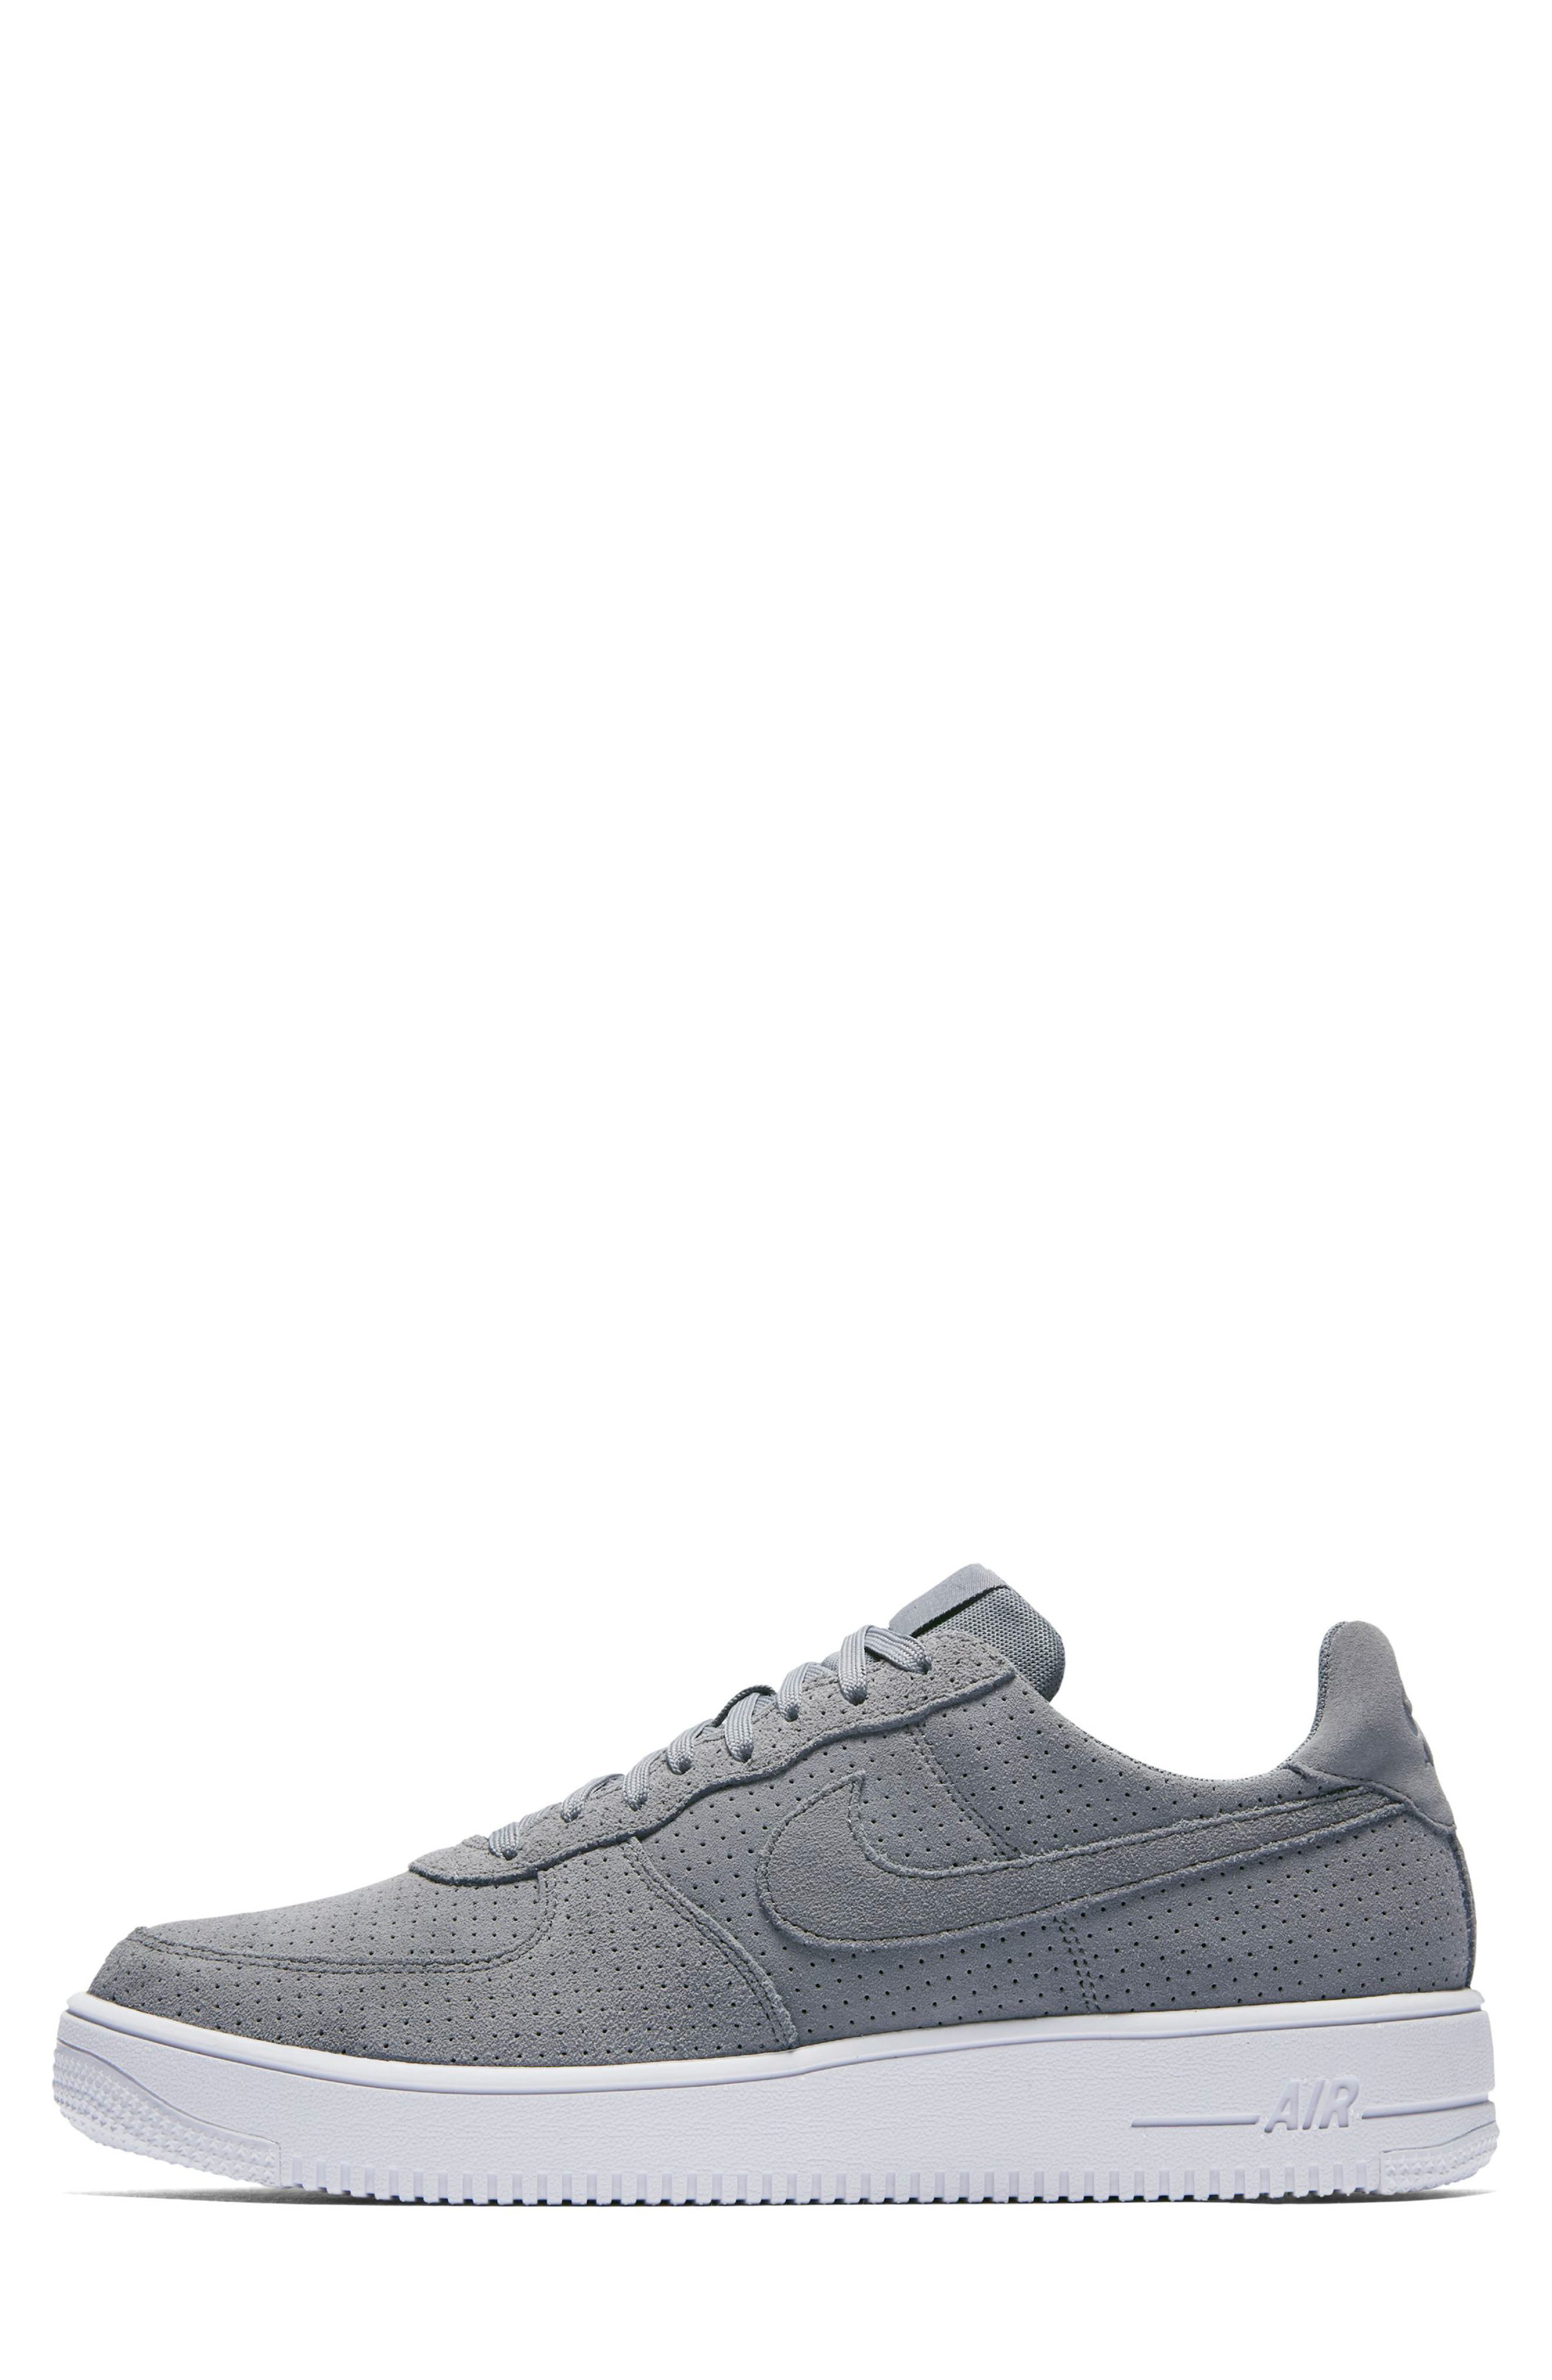 Air Force 1 Ultraforce Sneaker,                             Alternate thumbnail 3, color,                             Cool Grey/ White